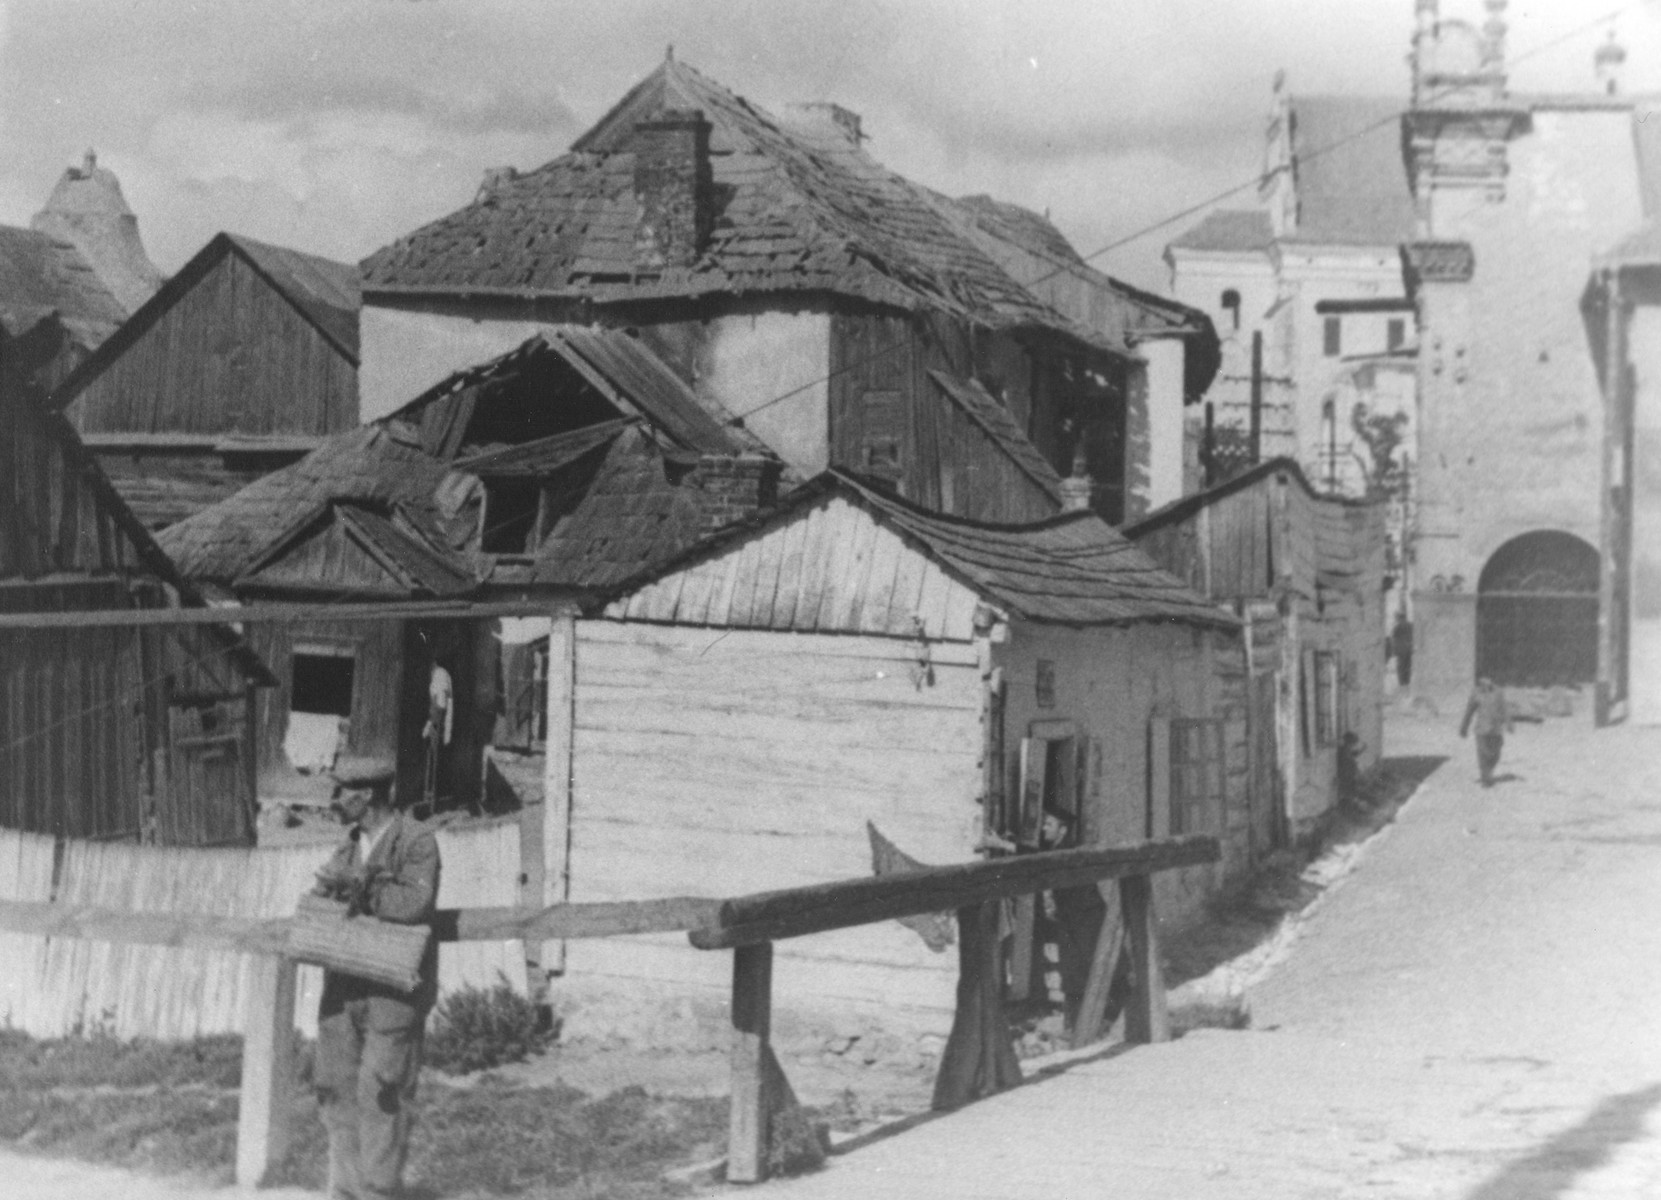 A cluster of old wooden houses in Kazimierz Dolny, Poland.